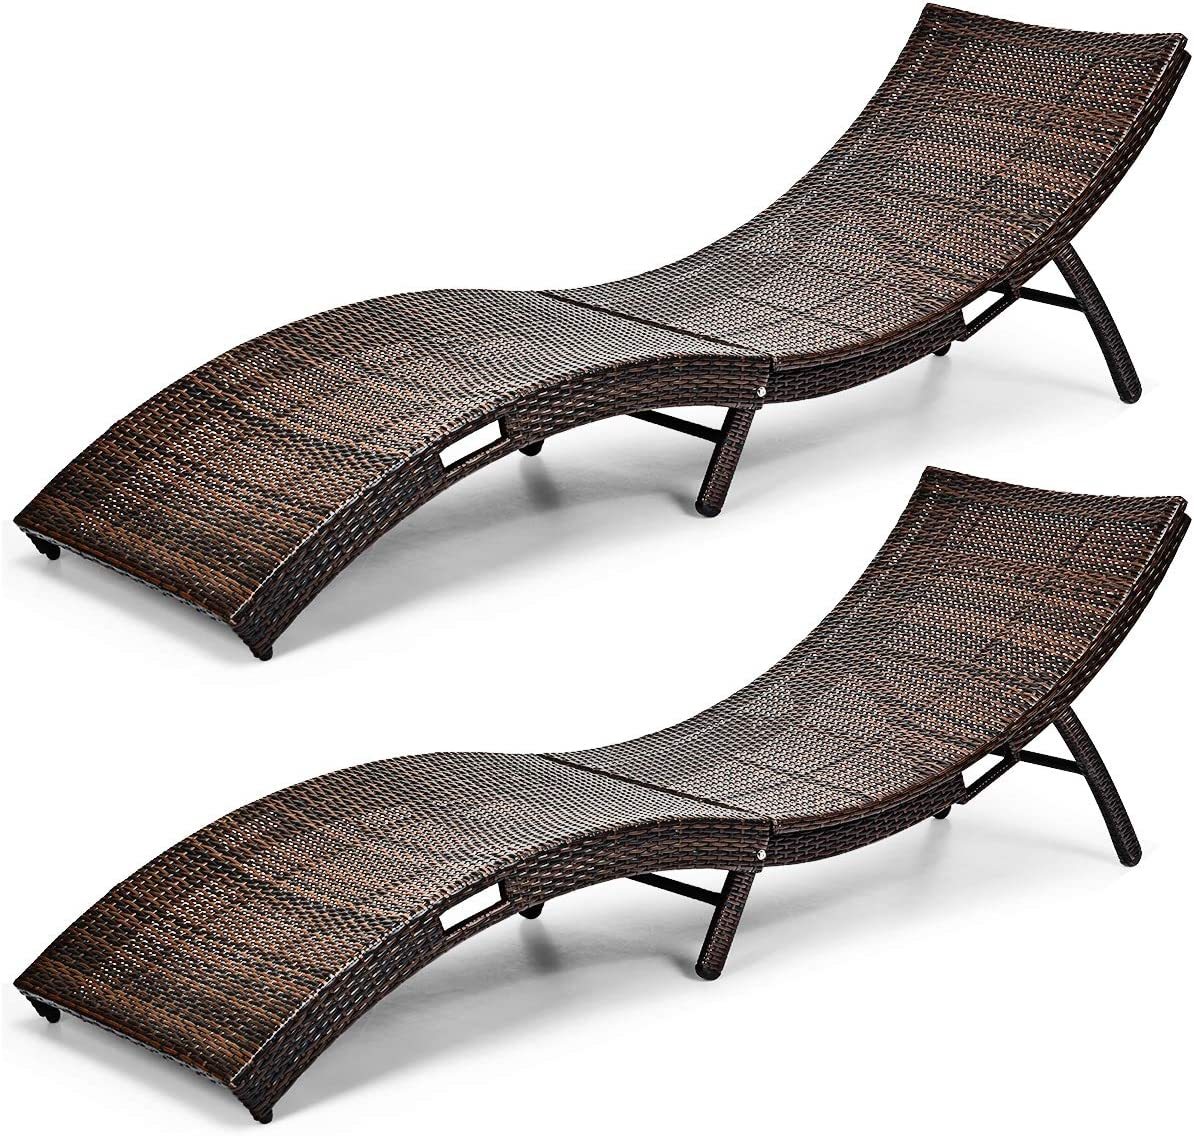 Tangkula Patio Rattan Chaise Lounge, Outdoor Wicker Lounge Chair, Foldable Chaise Lounge, Suitable for Poolside, Garden, Balcony 2, Brown